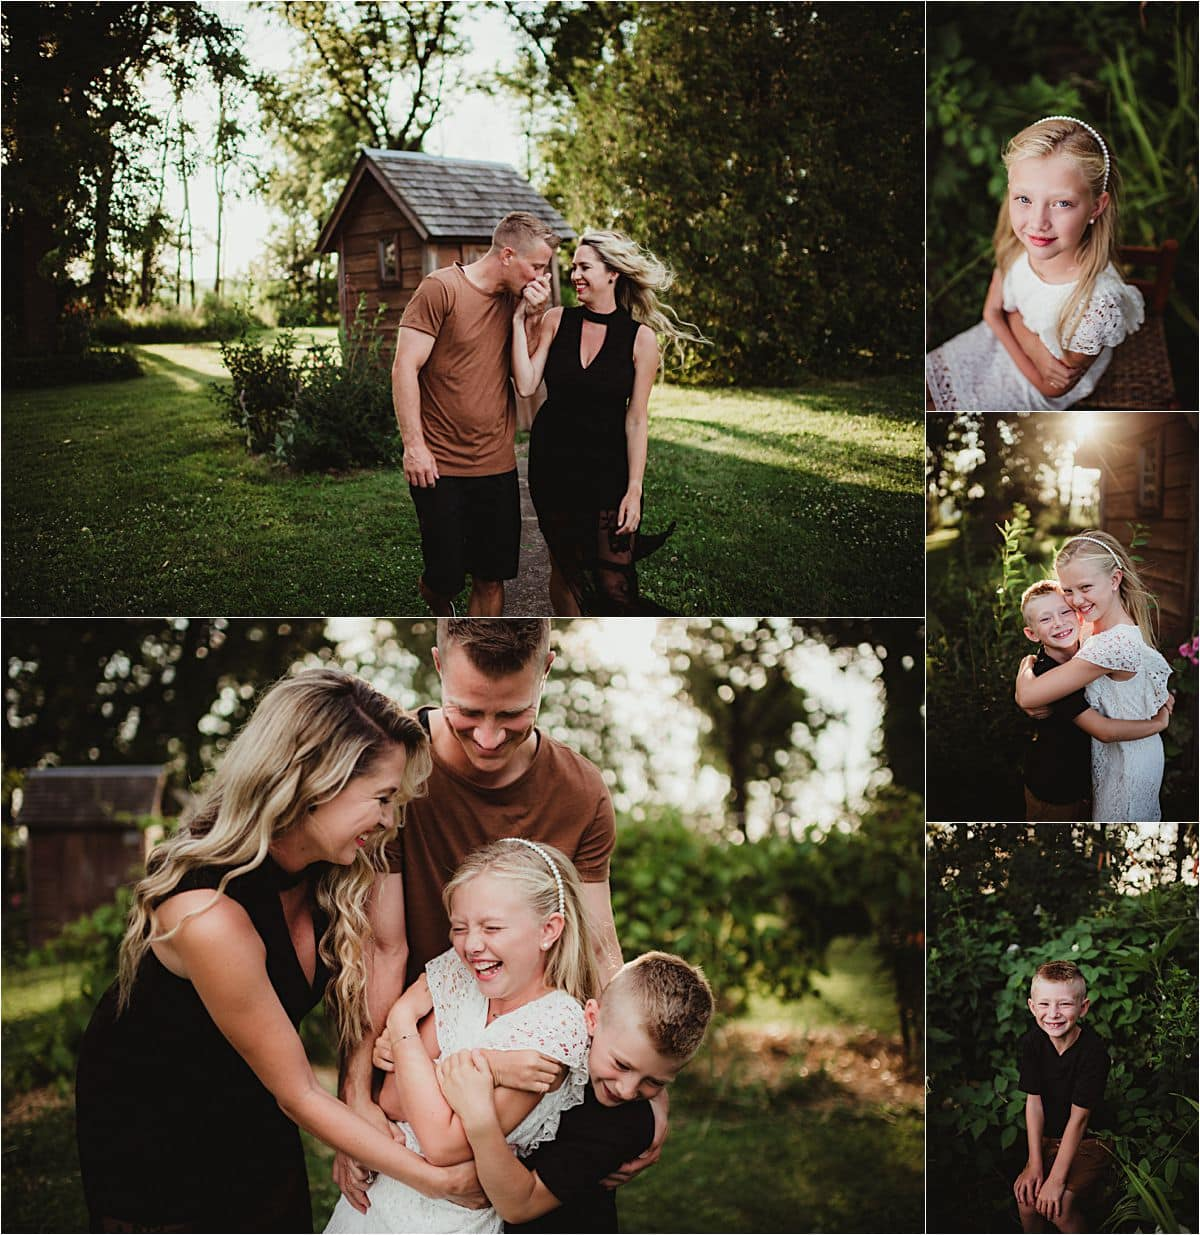 Neutral Palette Family Session Collage Family Snuggling